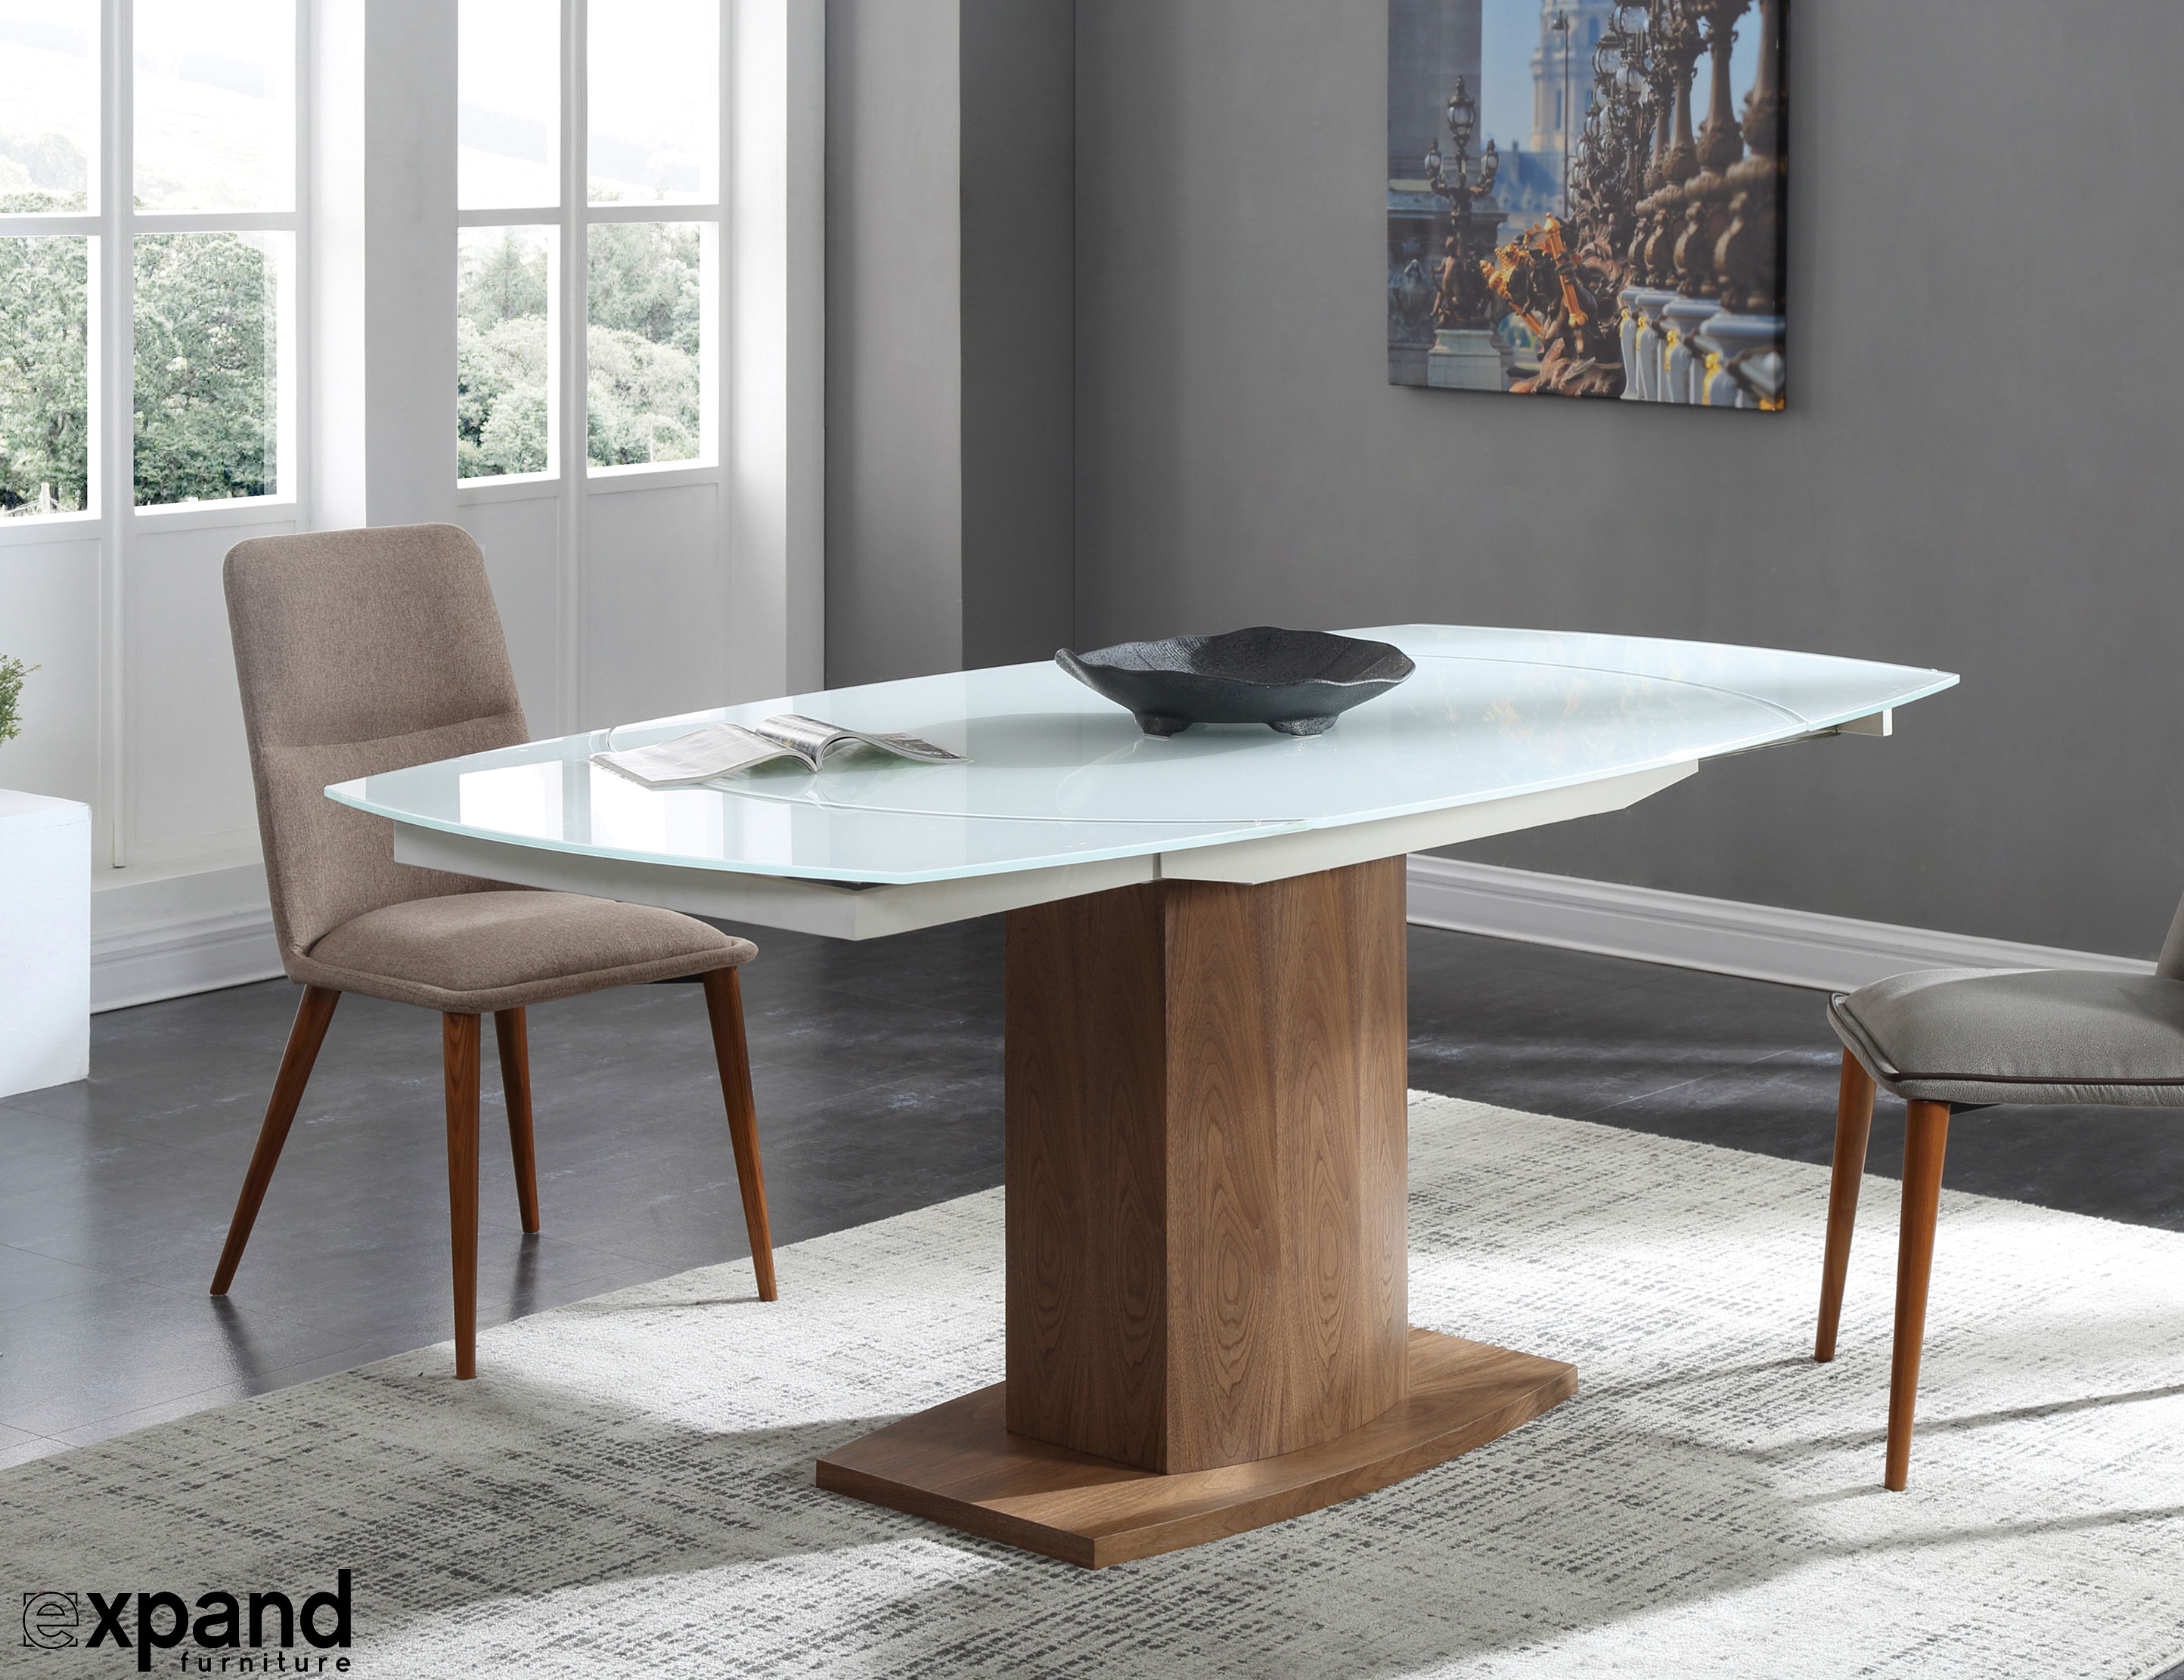 oval kitchen table designers long island tables imgkid the image kid has it